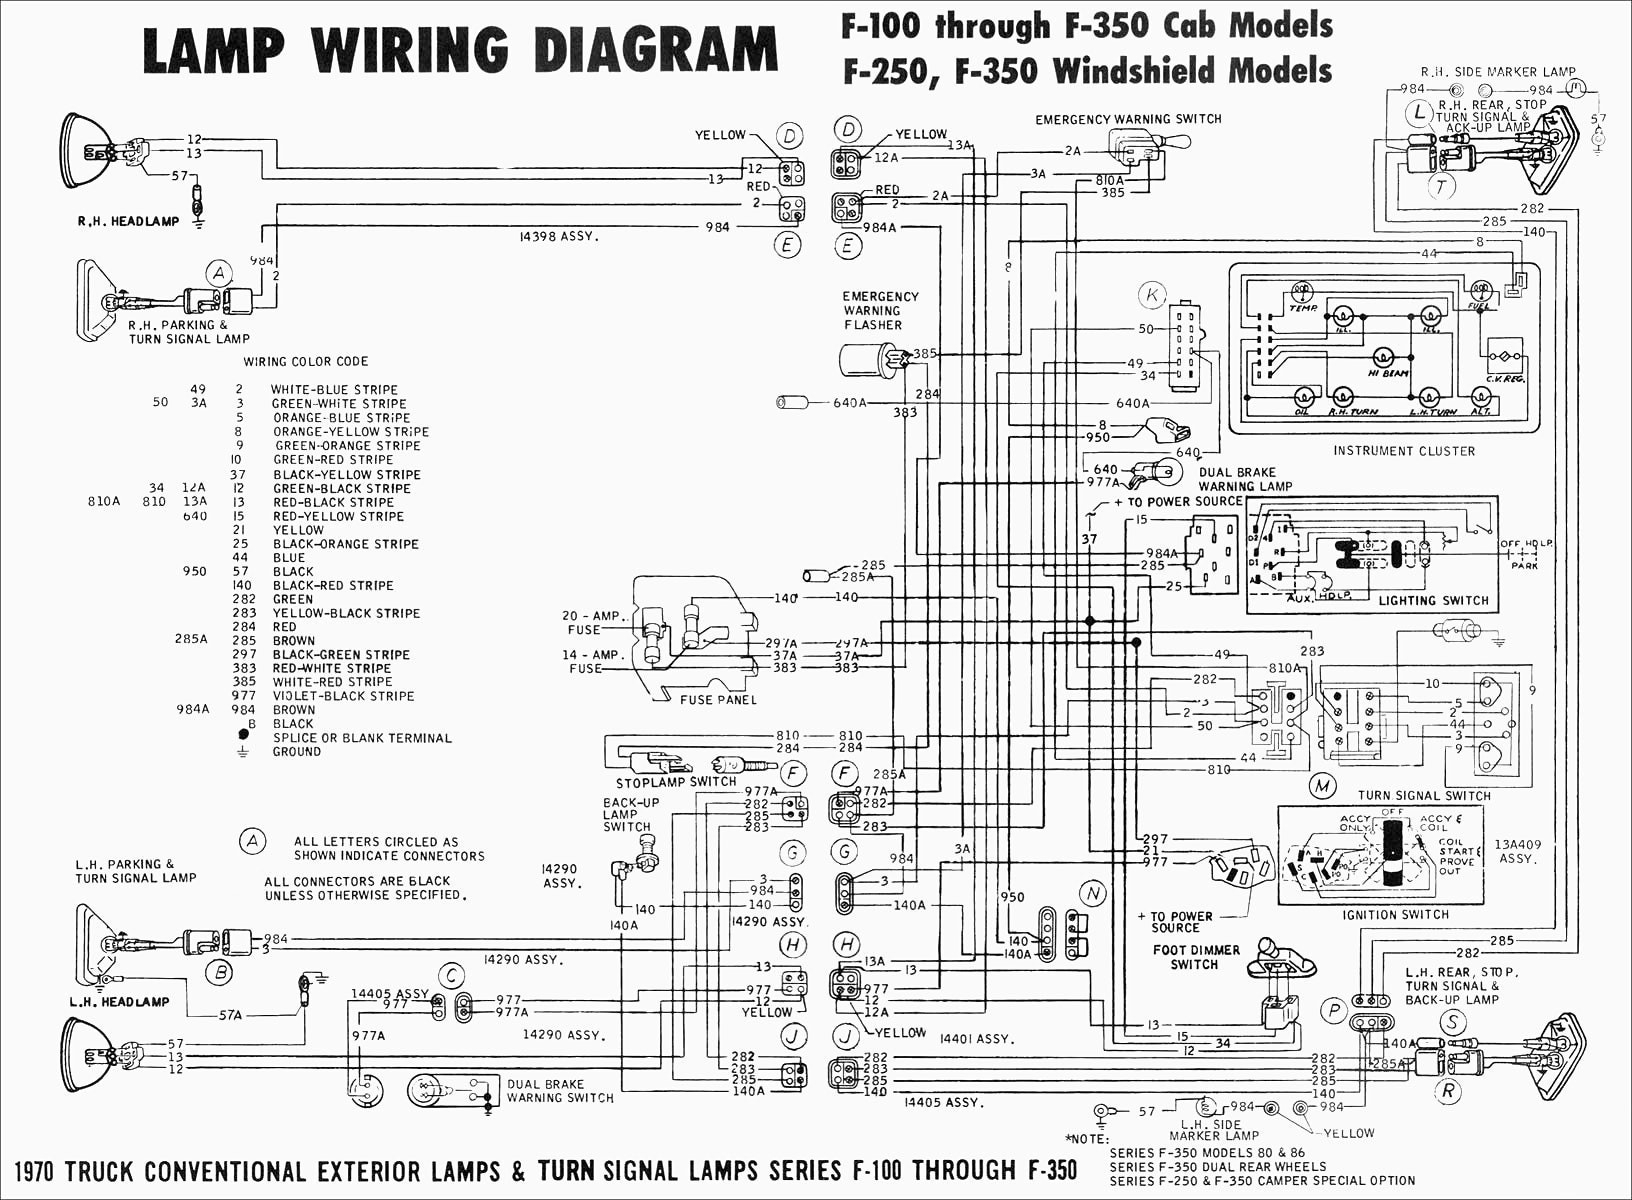 DIAGRAM] Jeep Grand Cherokee Wiring Diagram 2000 FULL Version HD Quality Diagram  2000 - RITUALDIAGRAMS.BANDAKADABRA.ITBandakadabra